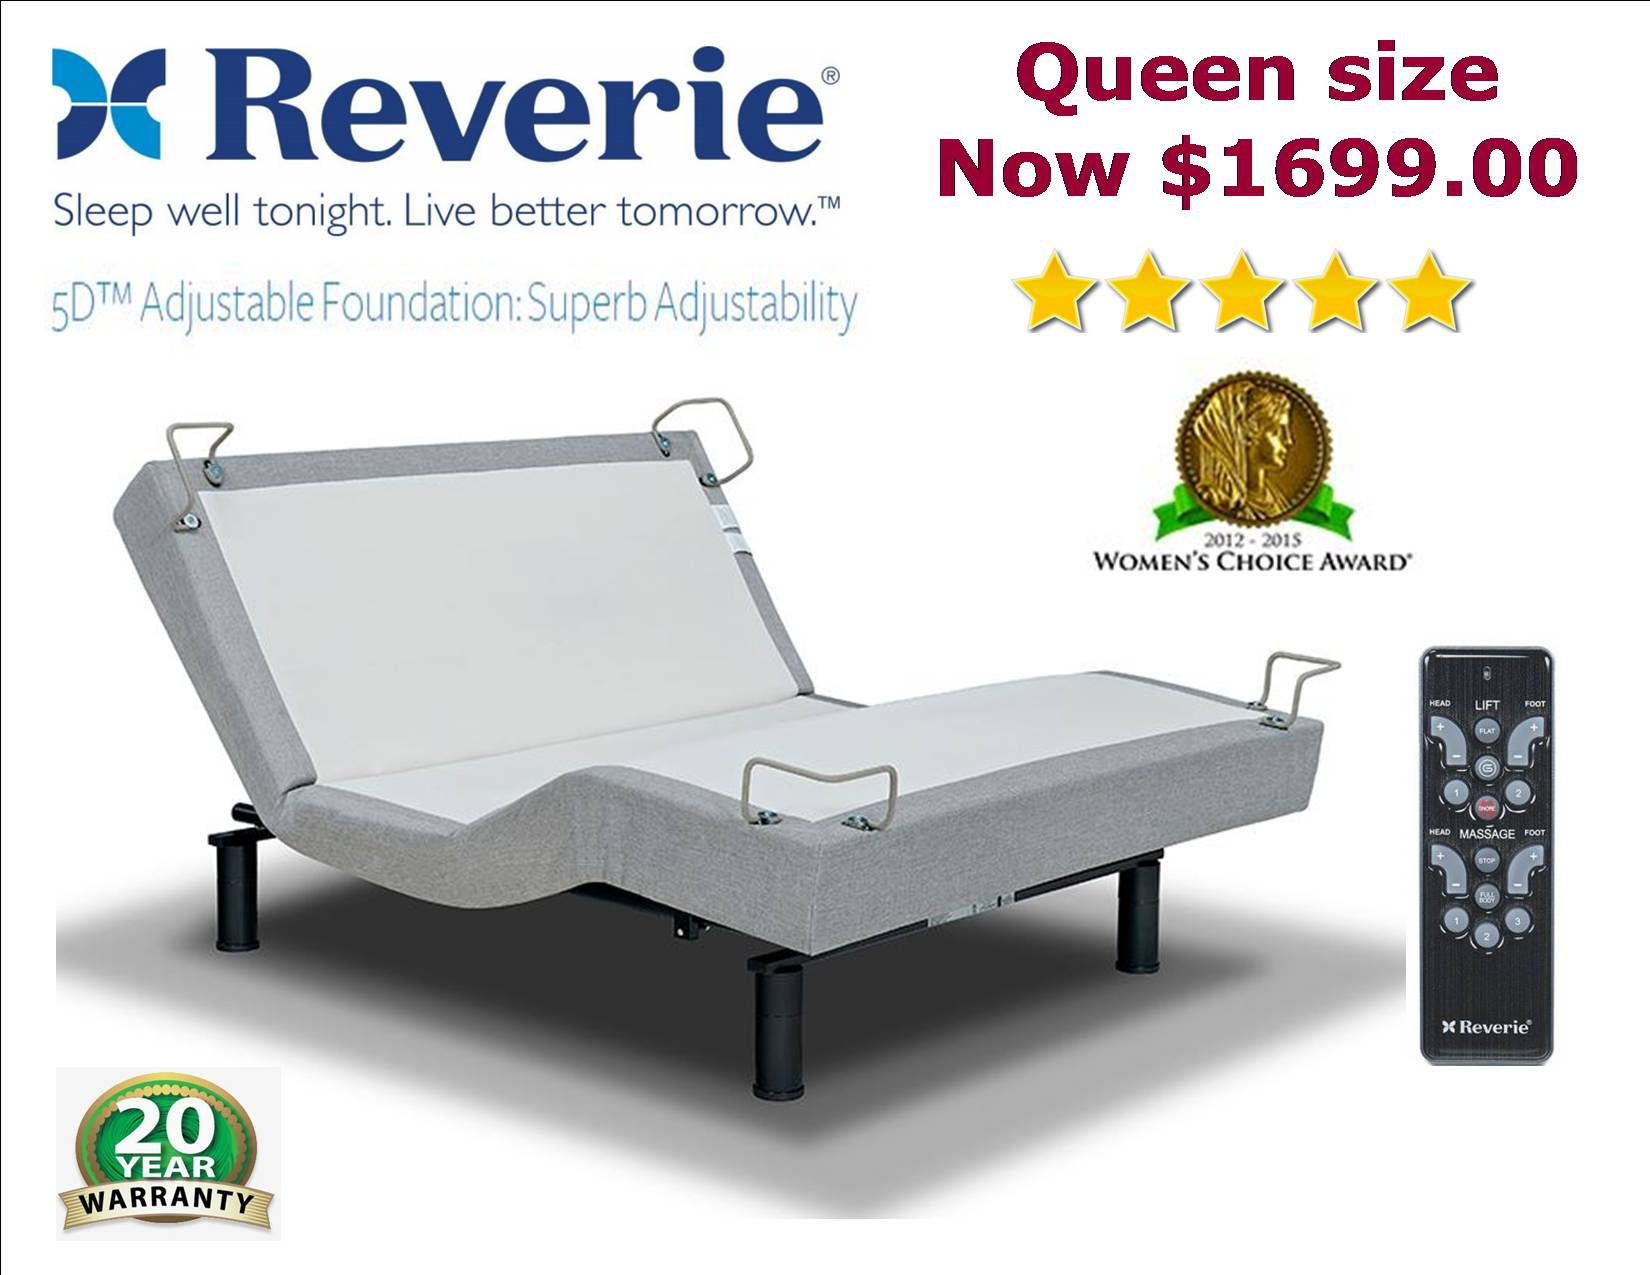 Reverie 5D adjustable bed pop. ""